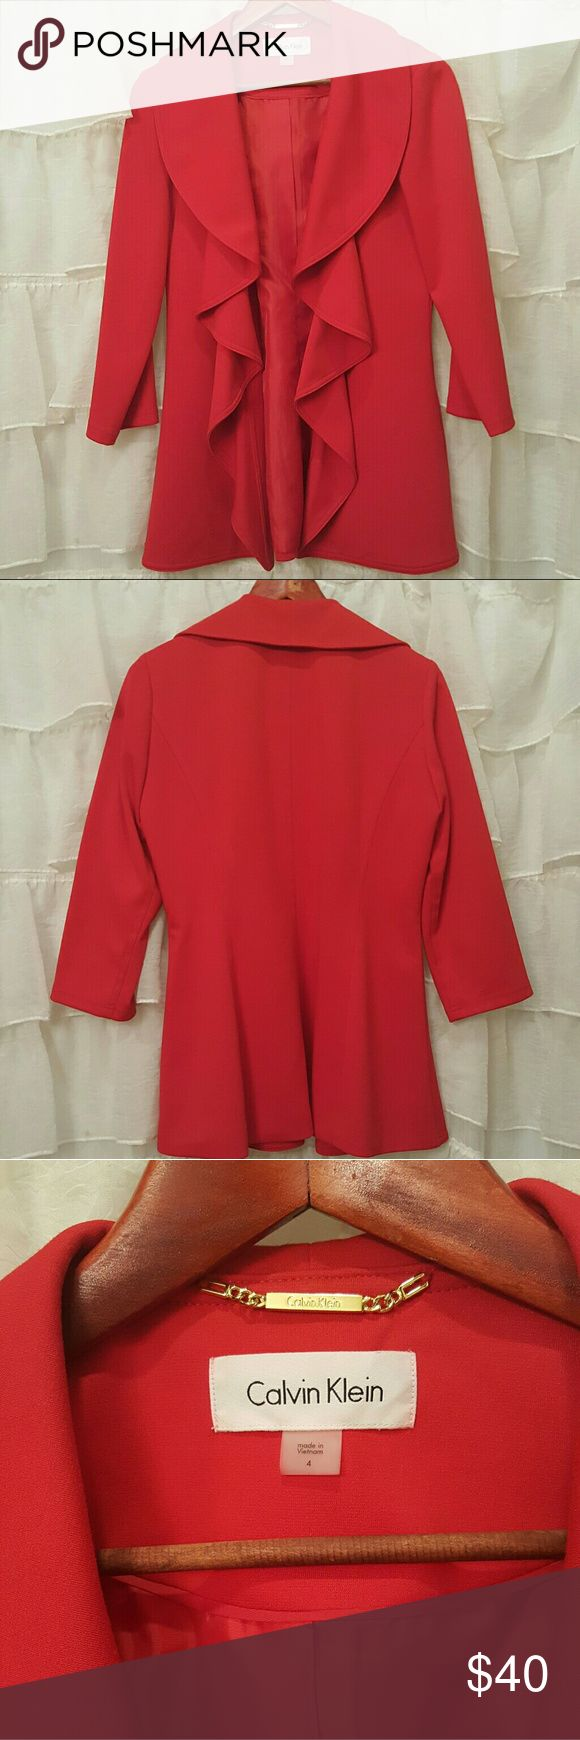 Gorgeous red Calvin Klein jacket The pictures say it all. This is a stunner! Beautiful like new red Calvin Klein jacket. Calvin Klein Jackets & Coats Blazers